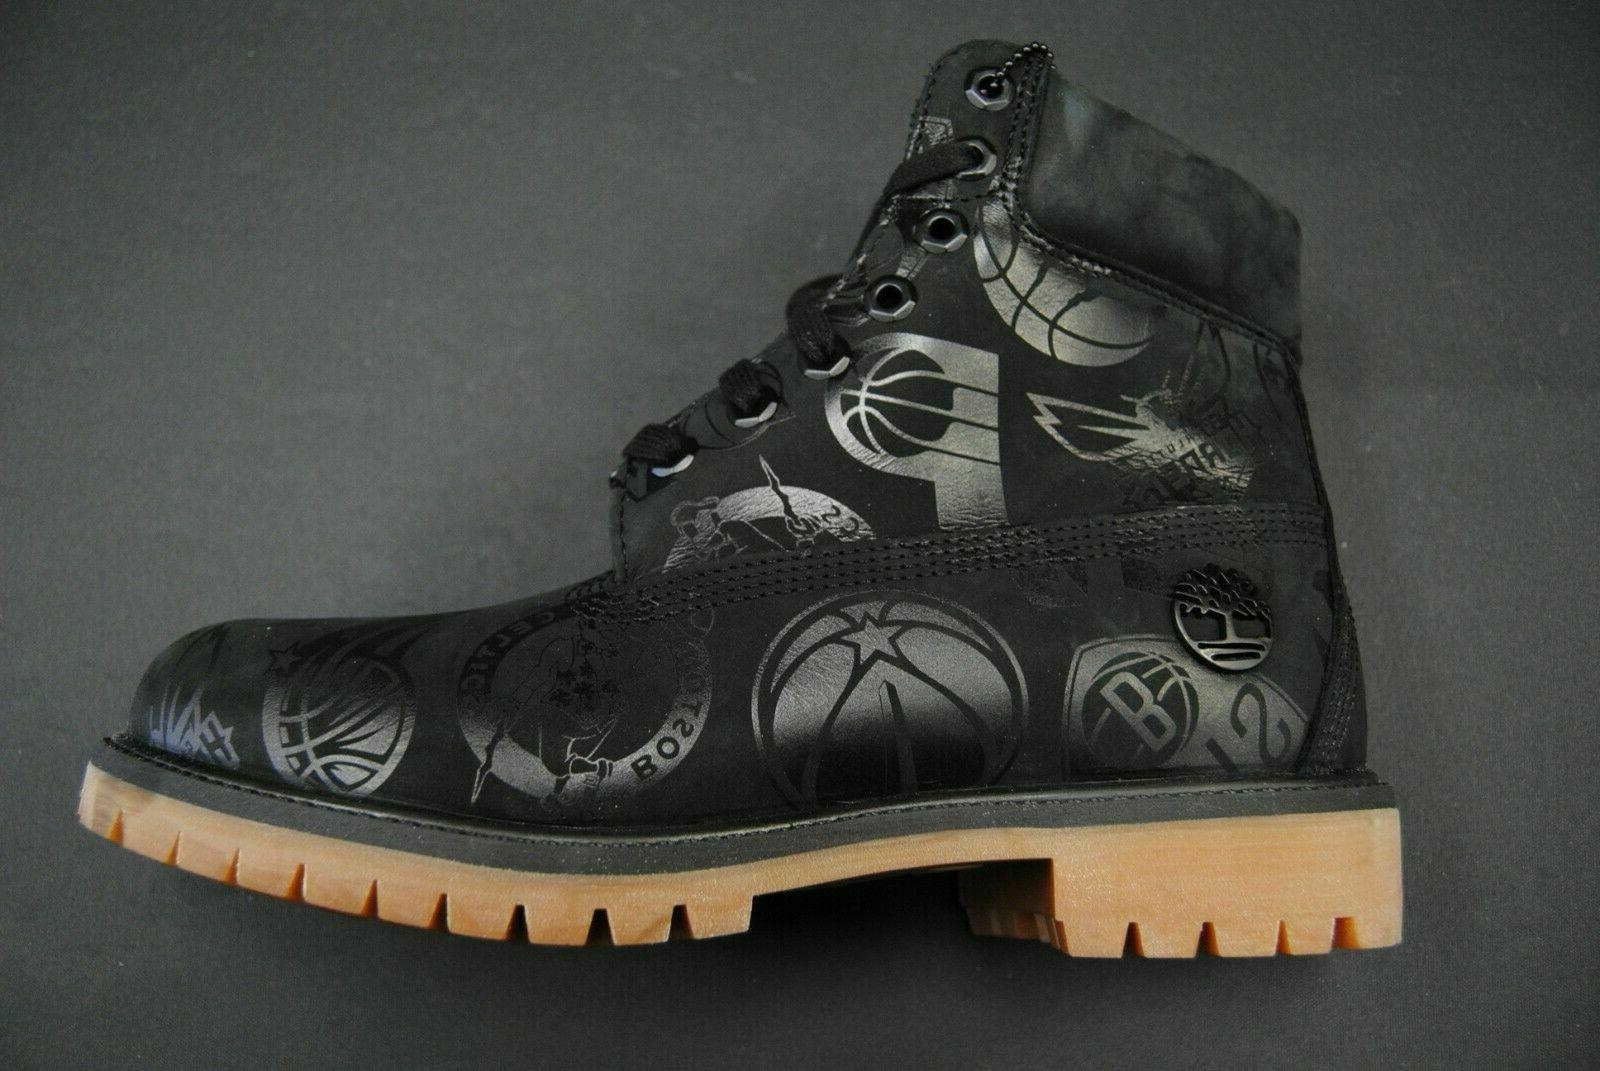 """Timberland vs West NBA 6"""" Black Leather Boots Size 9.5"""